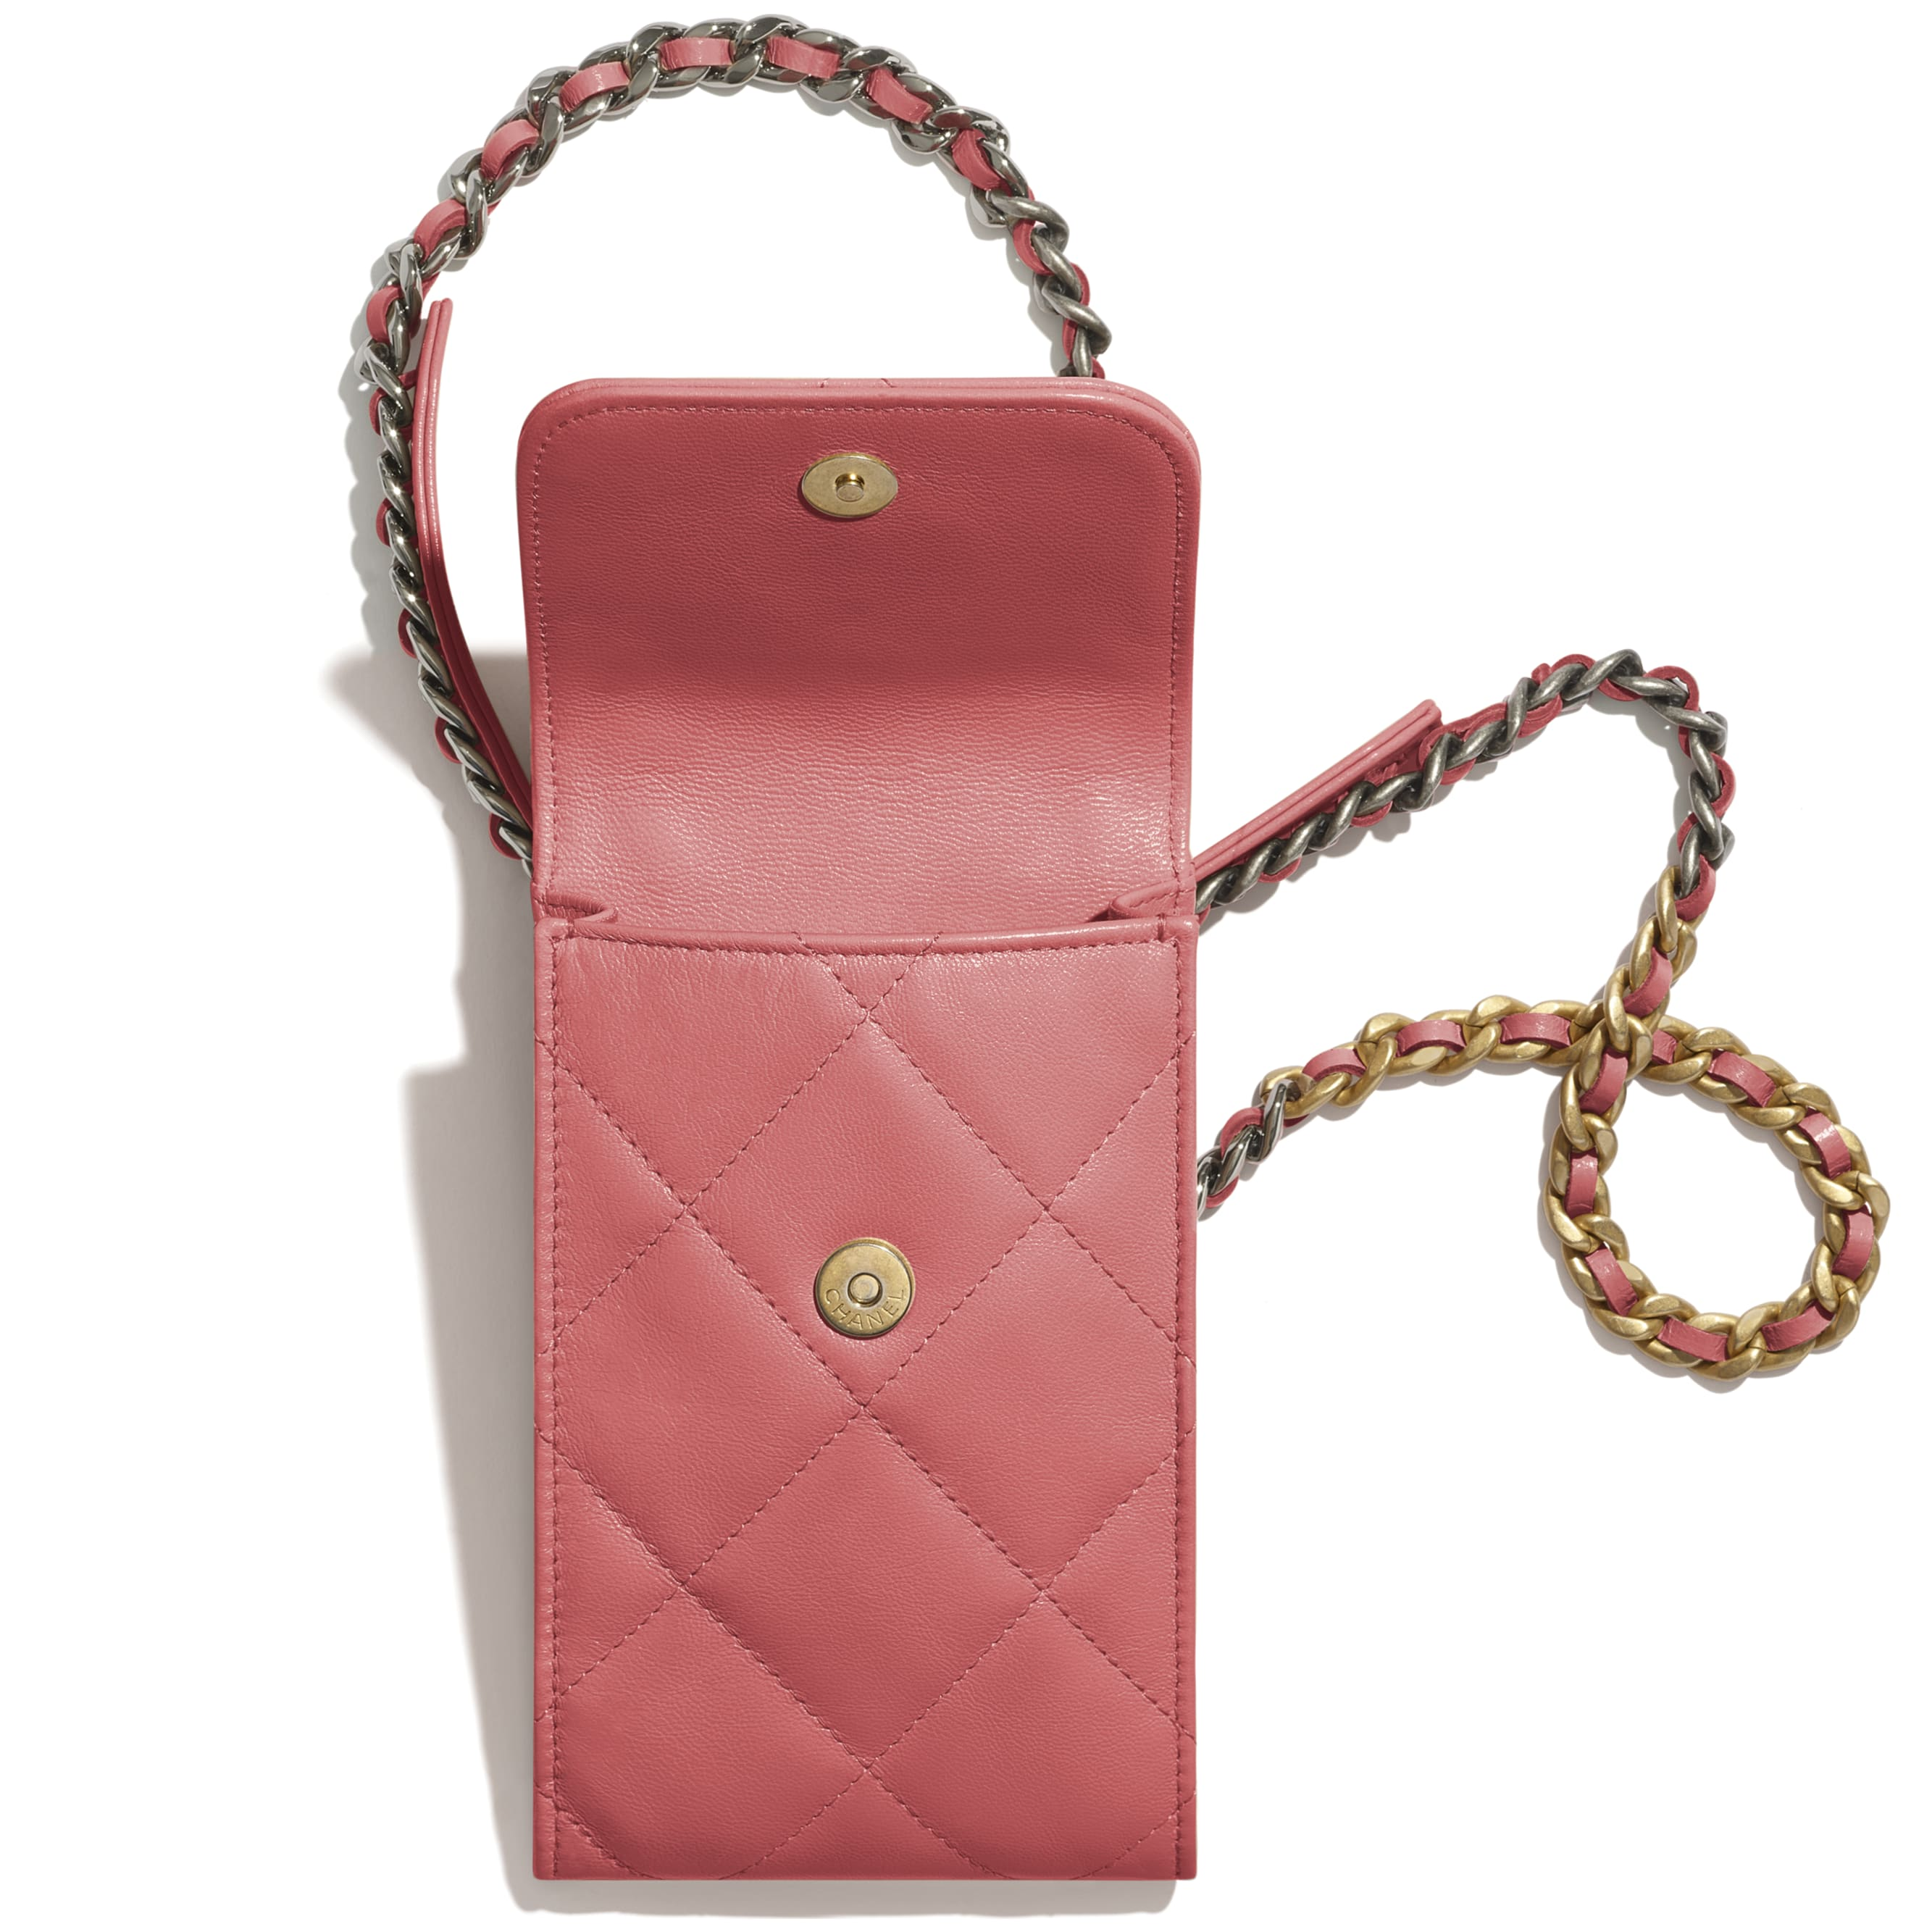 CHANEL 19 Phone Holder with Chain - Coral - Lambskin, Gold-Tone, Silver-Tone & Ruthenium-Finish Metal - CHANEL - Alternative view - see standard sized version